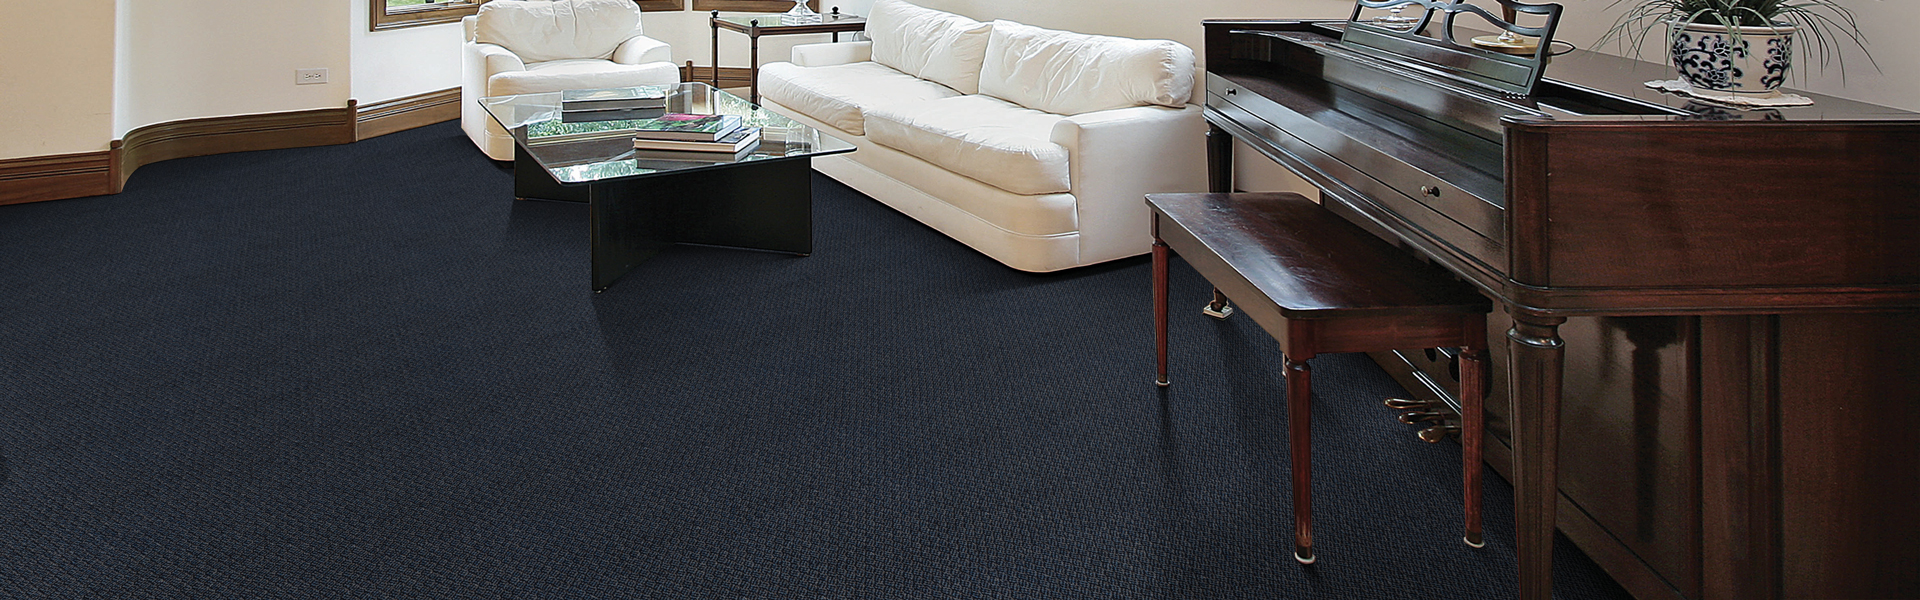 Network Iii 28 J7371 Broadloom Carpet Beaulieu Canada